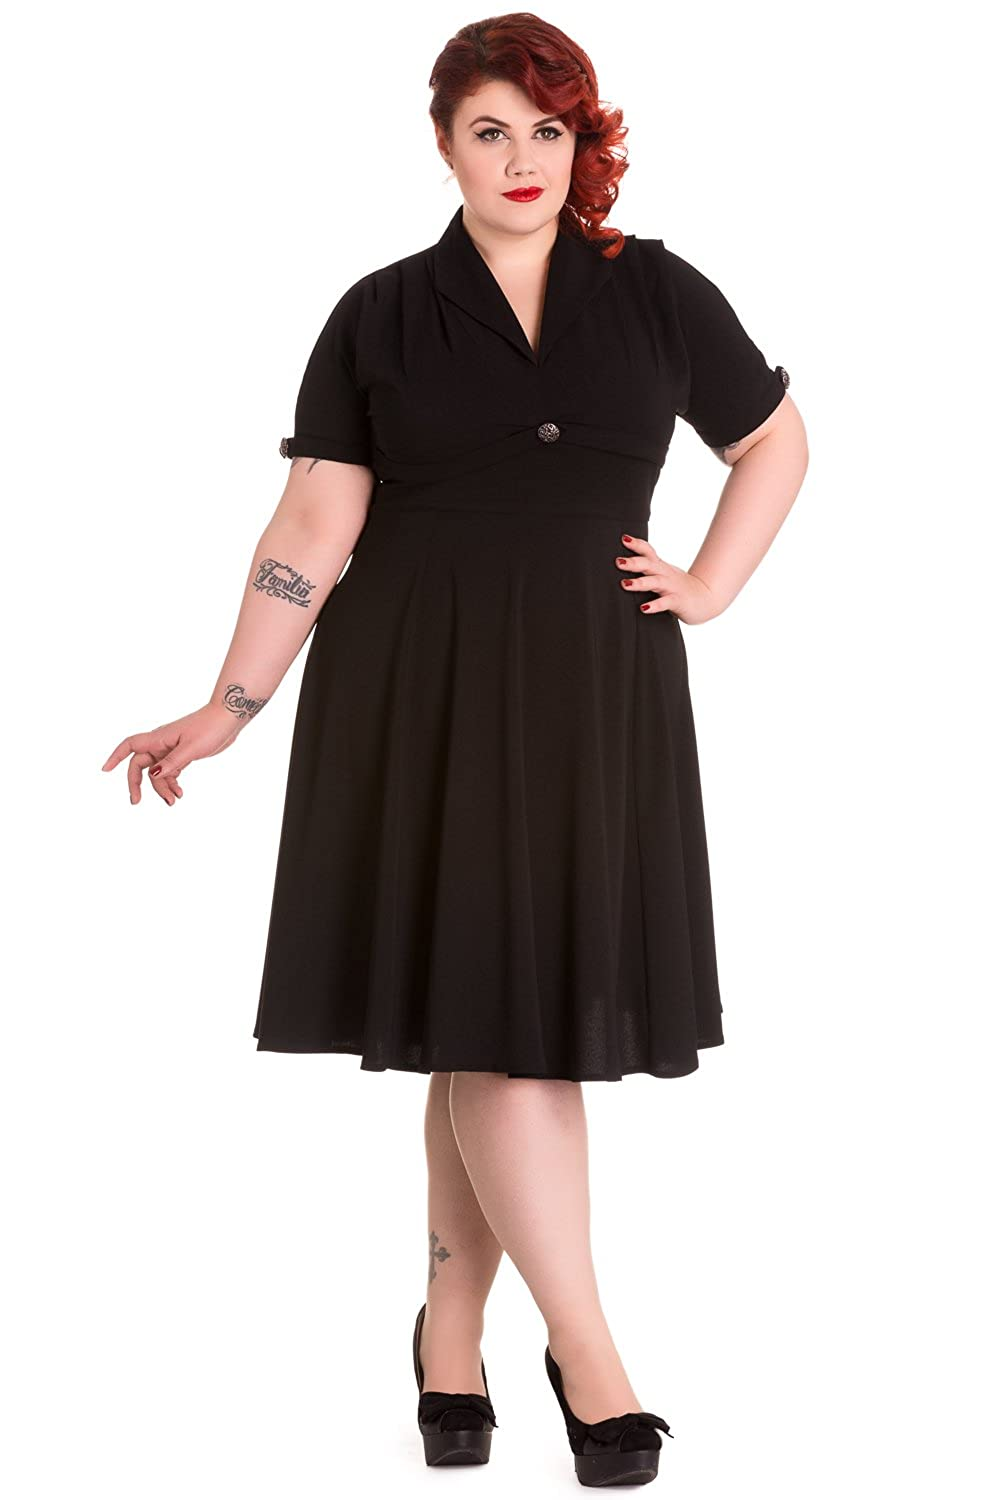 1960s Style Dresses- Retro Inspired Fashion Hell Bunny Plus Size 60s Vintage Style Jocelyn Flare PartyDress $87.00 AT vintagedancer.com